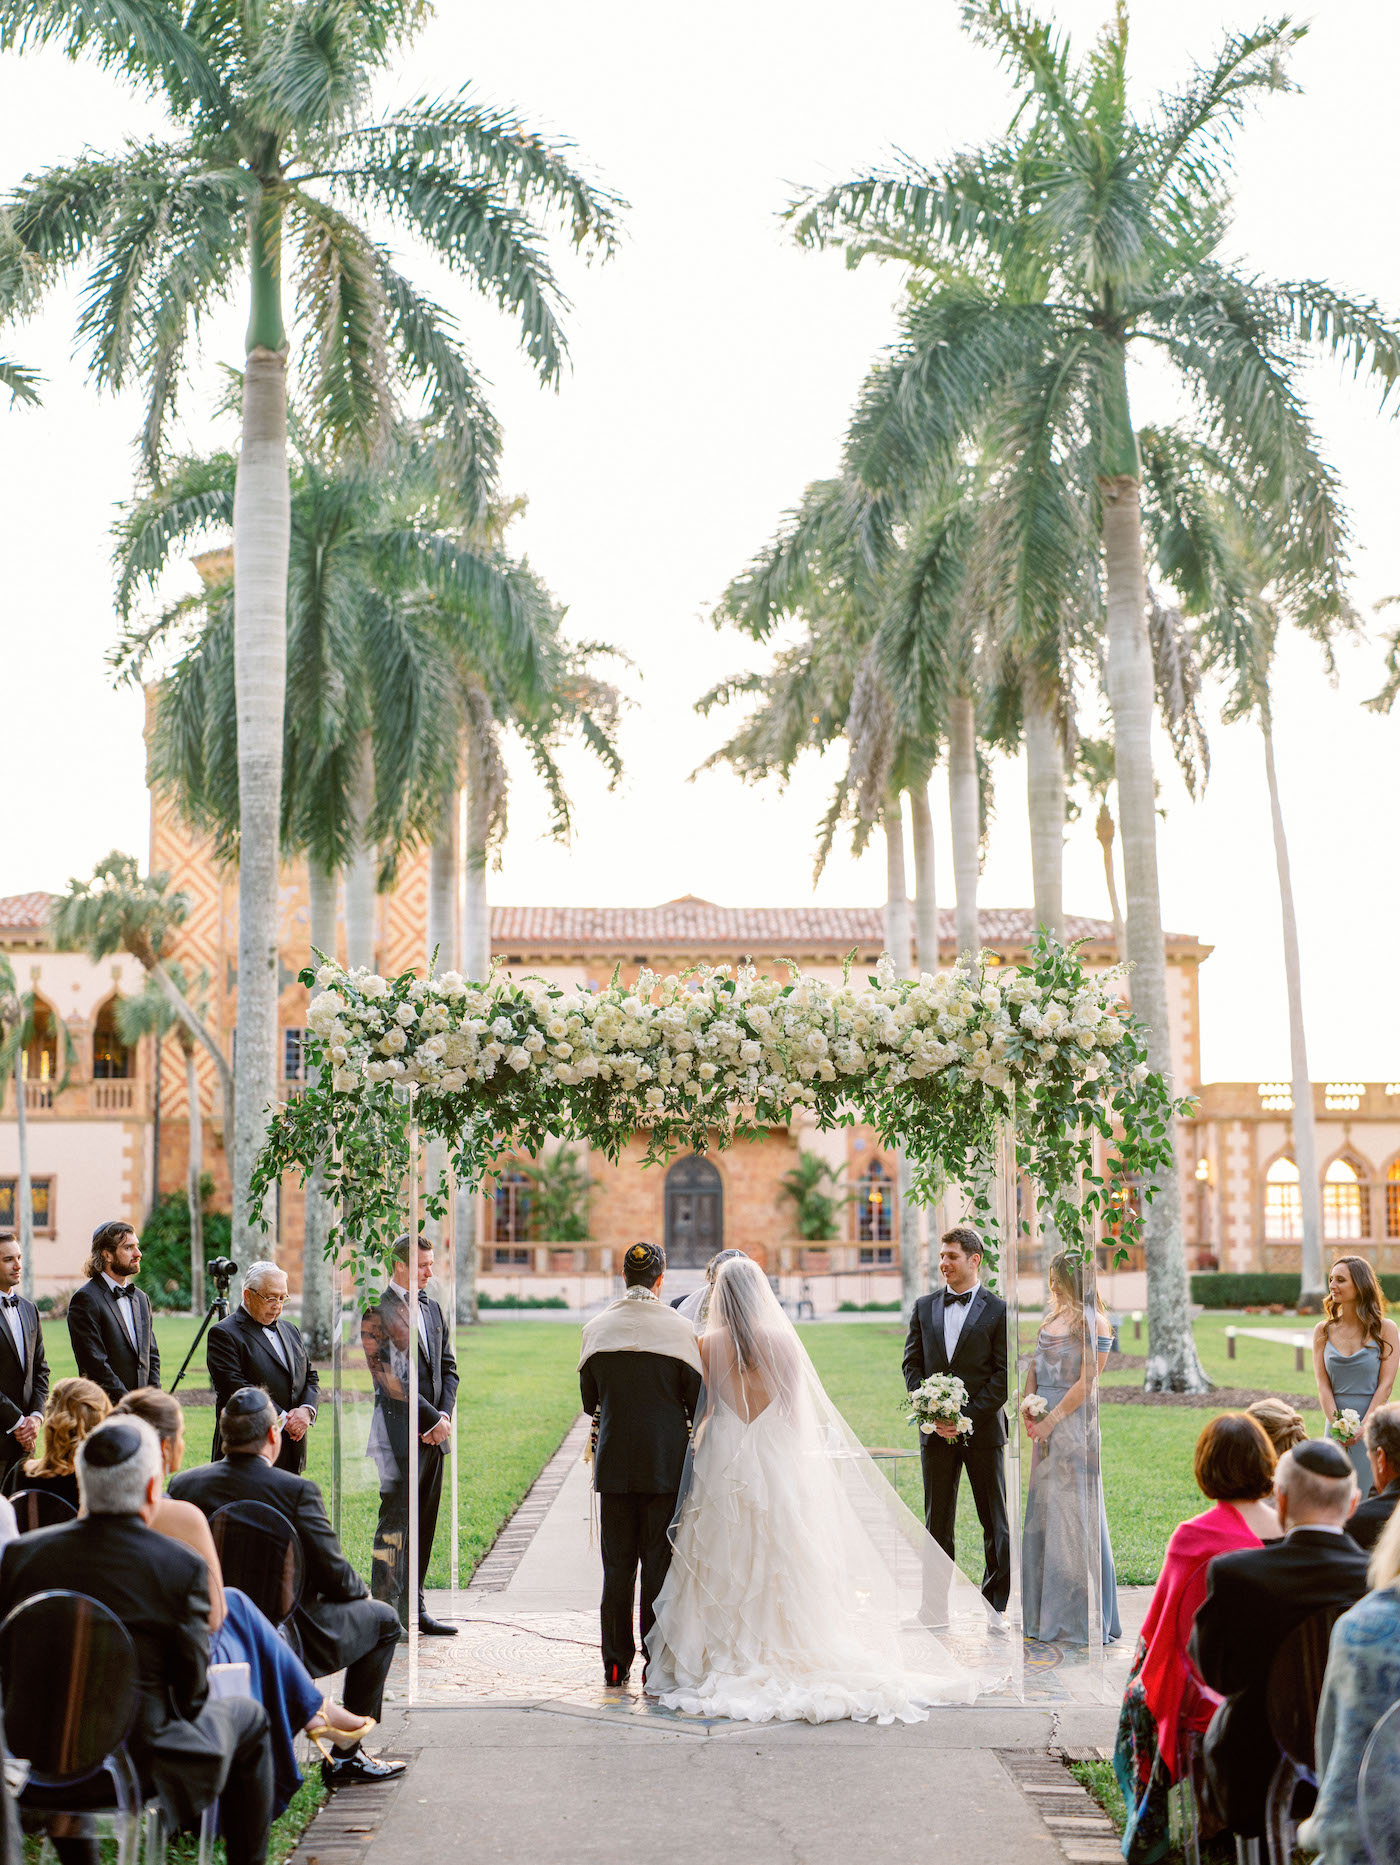 Romantic, Modern Florida Bride and Groom During Outdoor Wedding Ceremony with Jewish Altar, Ghost Chairs, Clear Acrylic Chuppah with Lush Ivory Floral Bouquets and Greenery Decor, In Courtyard of The Ringling Museum | Sarasota Wedding Planner NK Weddings